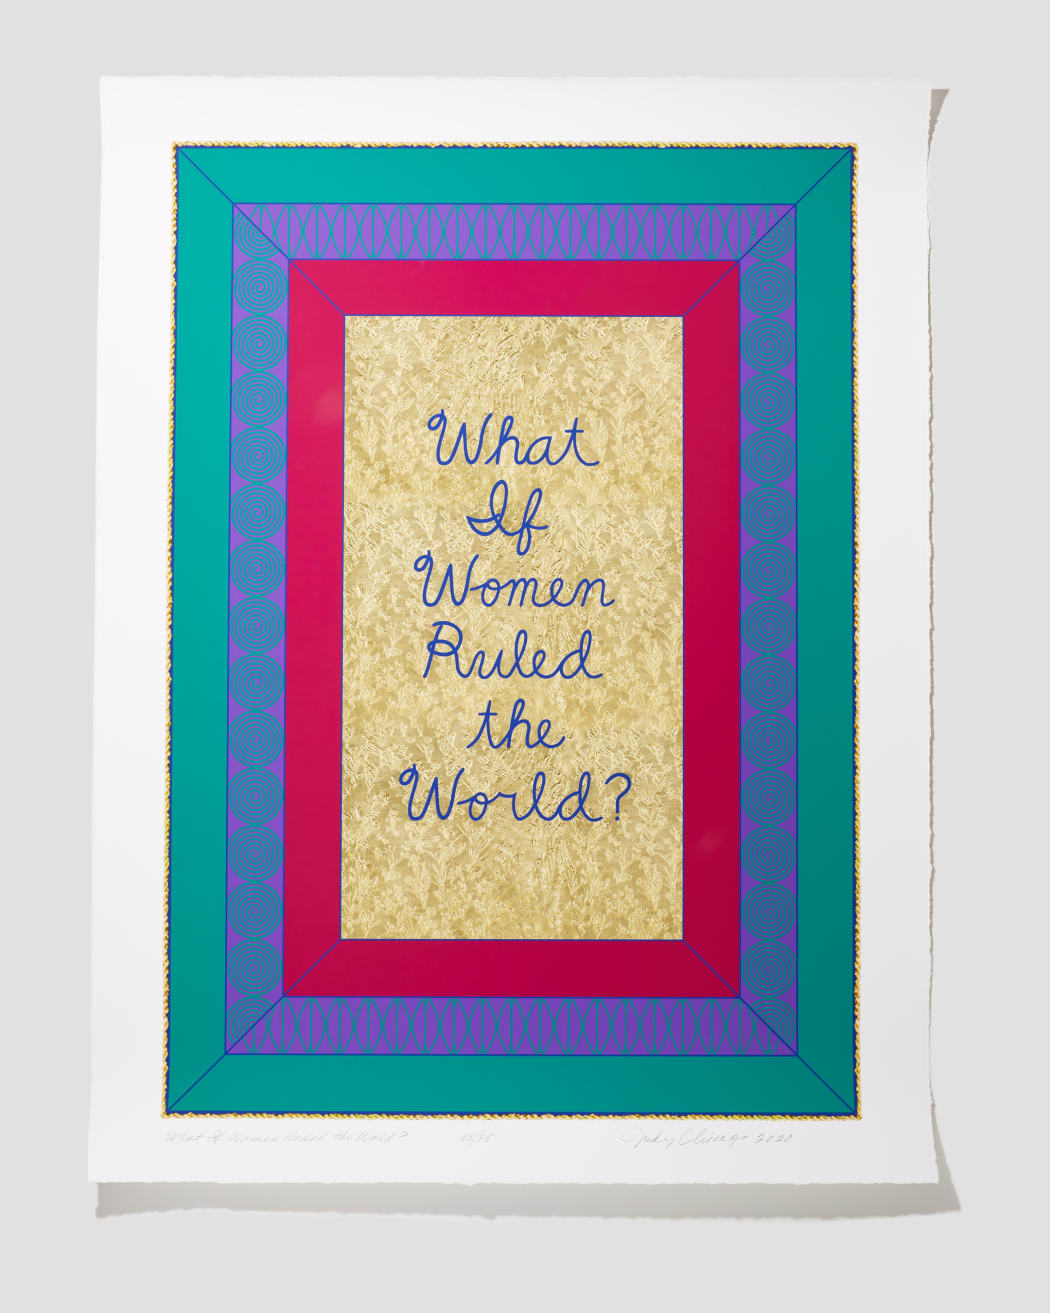 Judy Chicago, What if Women Ruled the World?, 2020 Archival pigment print on paper, 36 x 27 in (91.4 x 68.6 cm), Edition of 75, $4500.